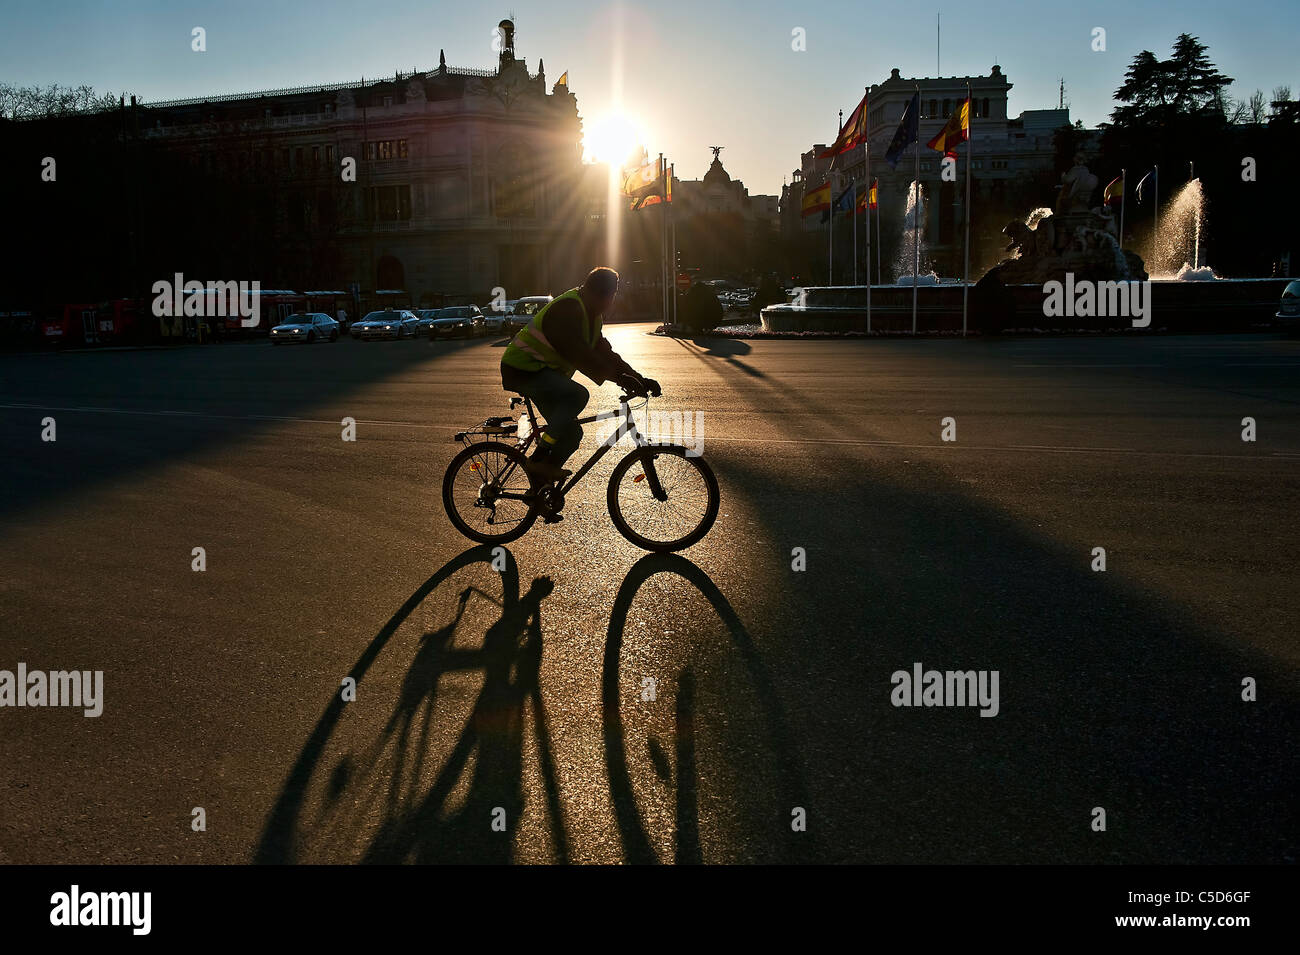 Man riding a bike as the sun rises, Madrid, Spain - Stock Image